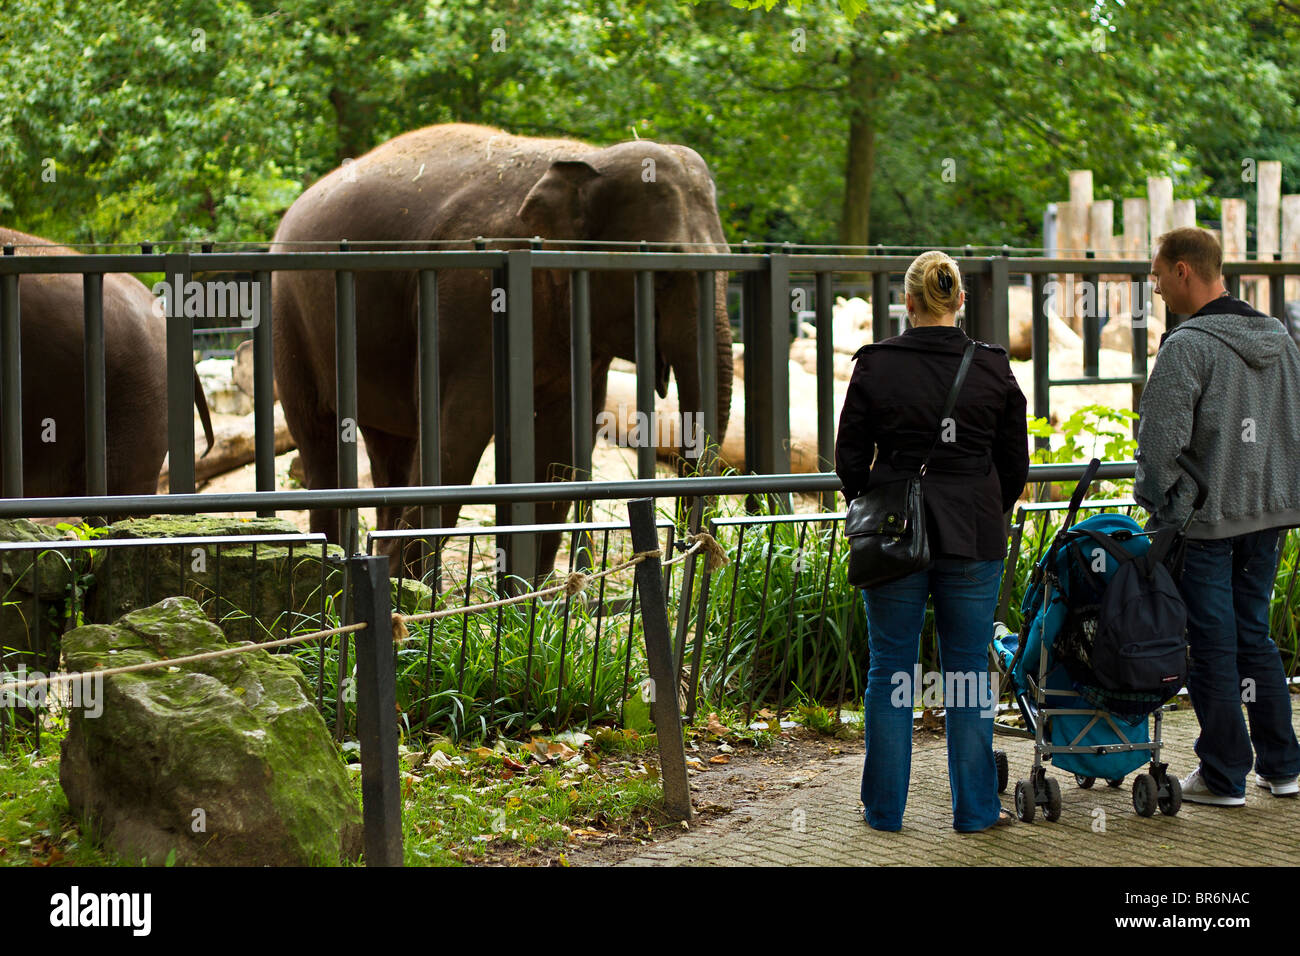 Family visiting the elephants at Artis Zoo, Amsterdam, Holland - Stock Image